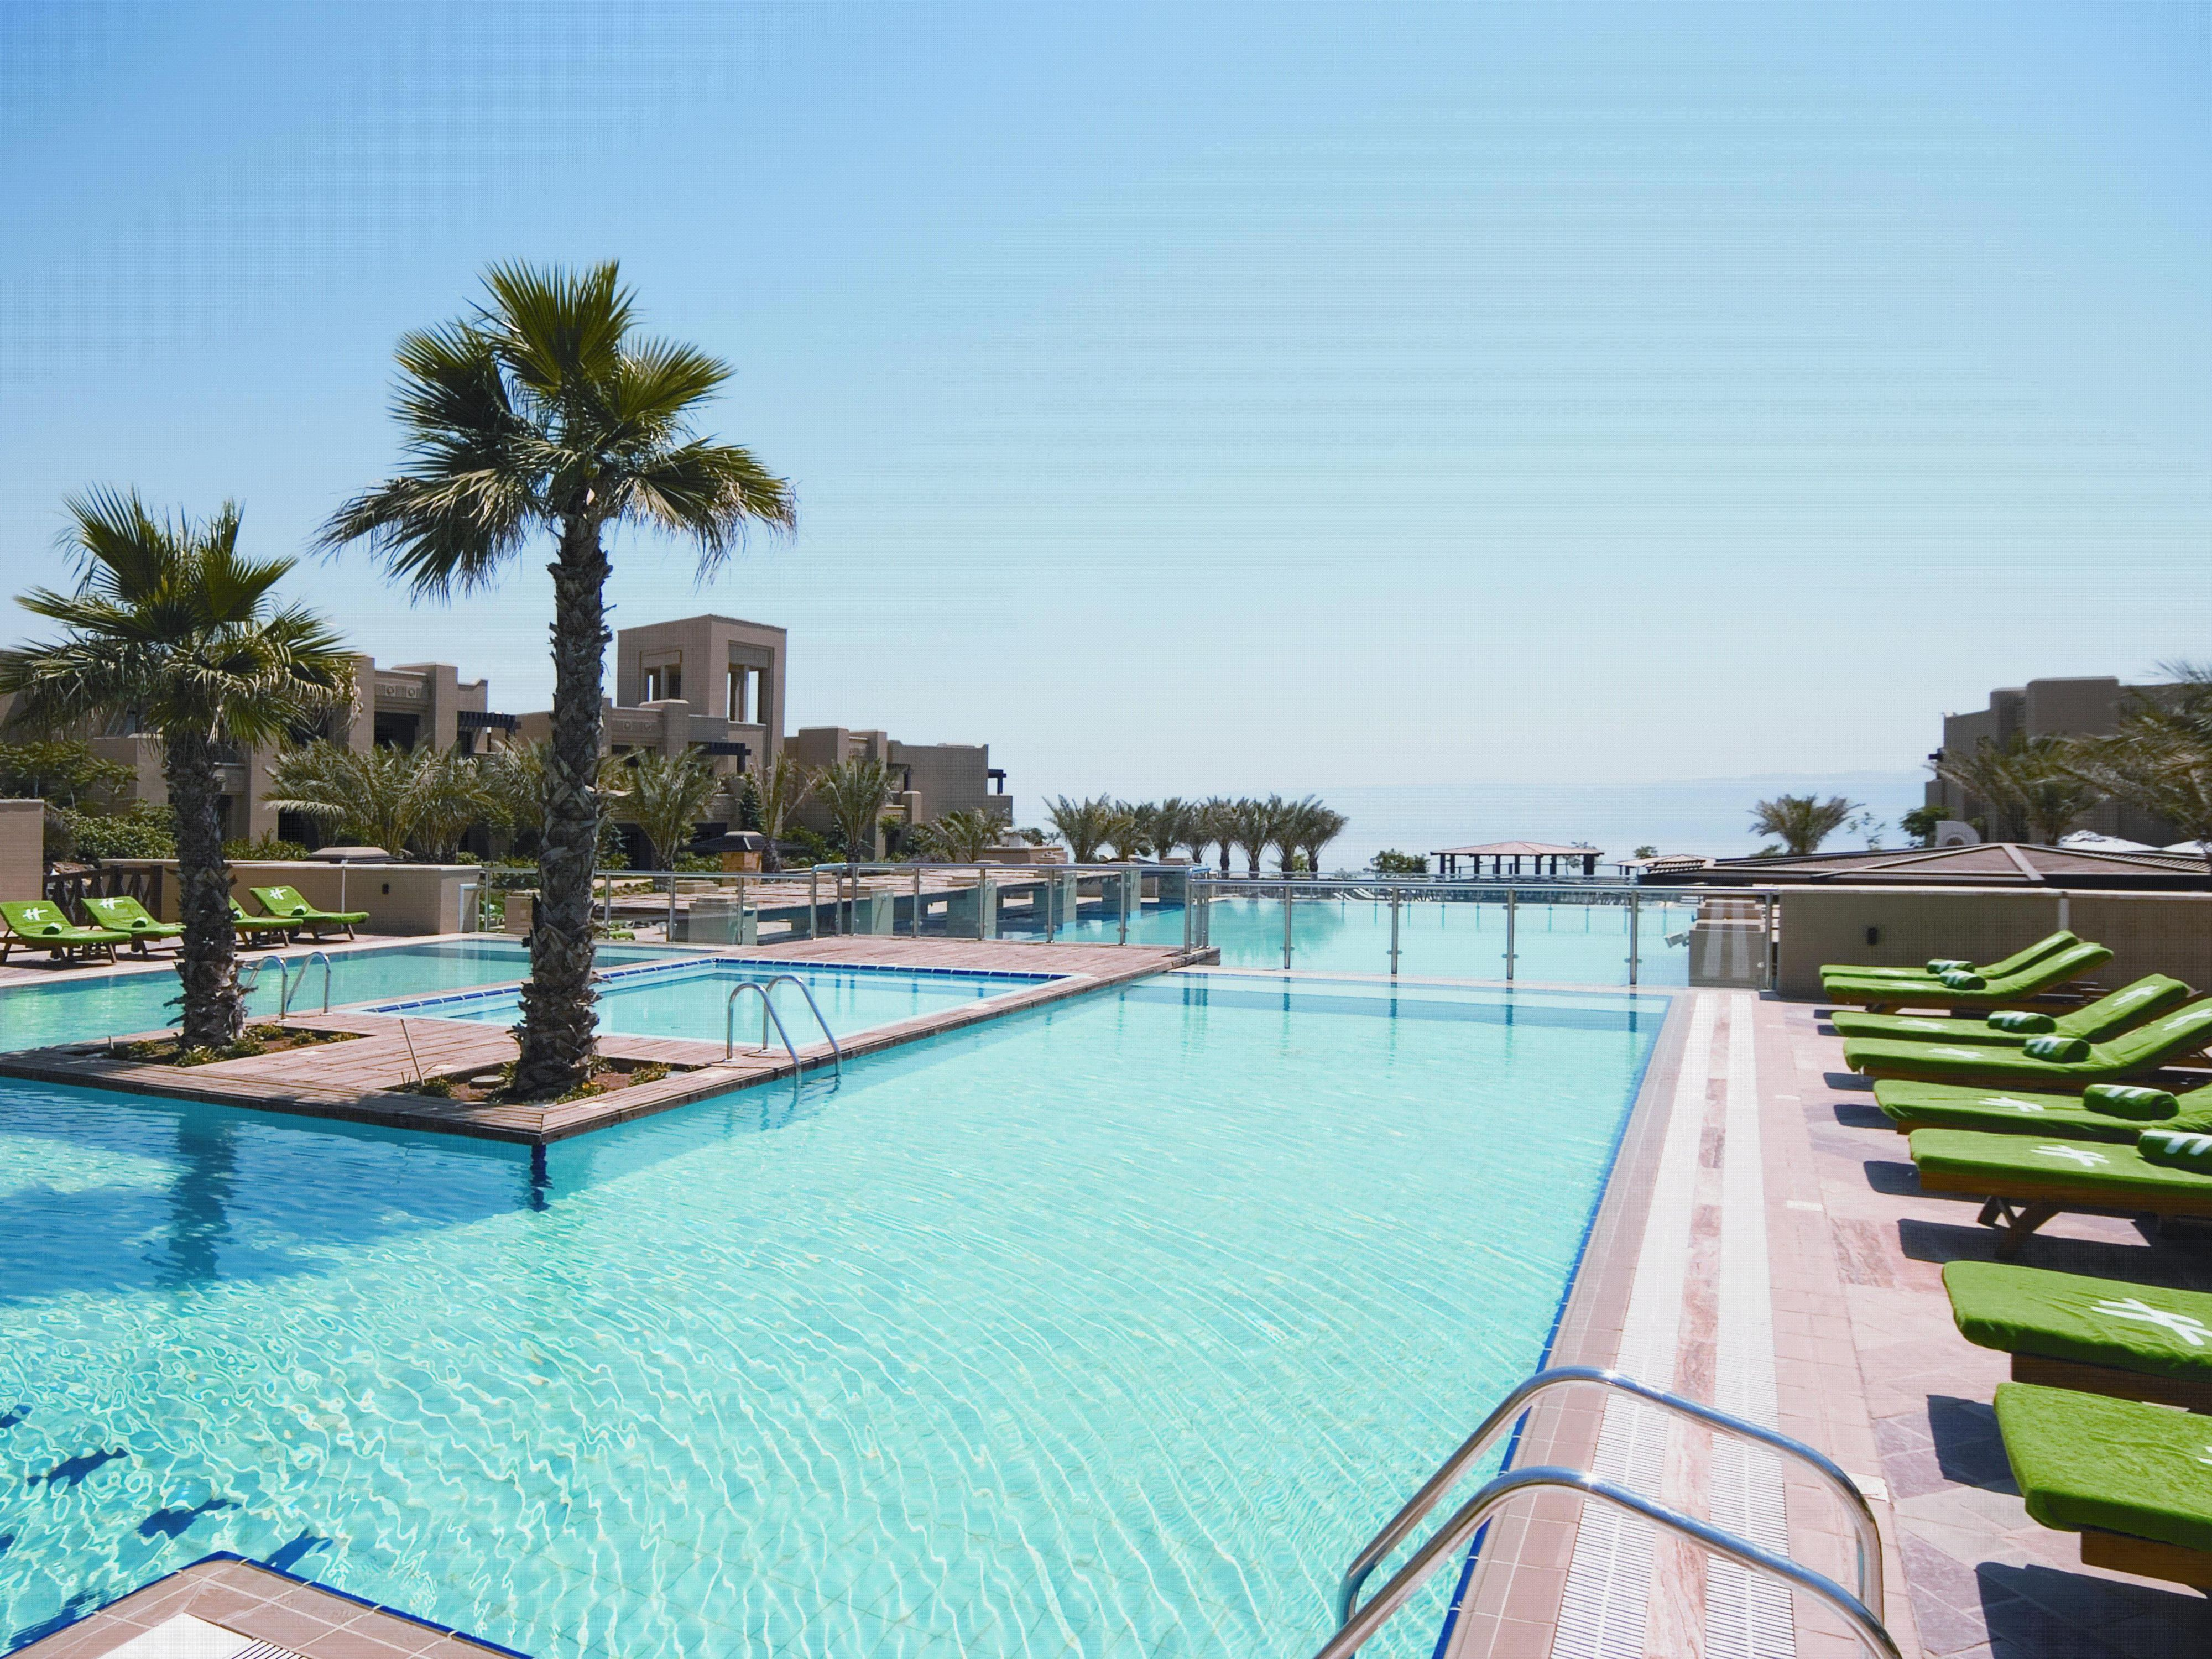 Enjoy our main pool with its Jacuzzi island and water fountain